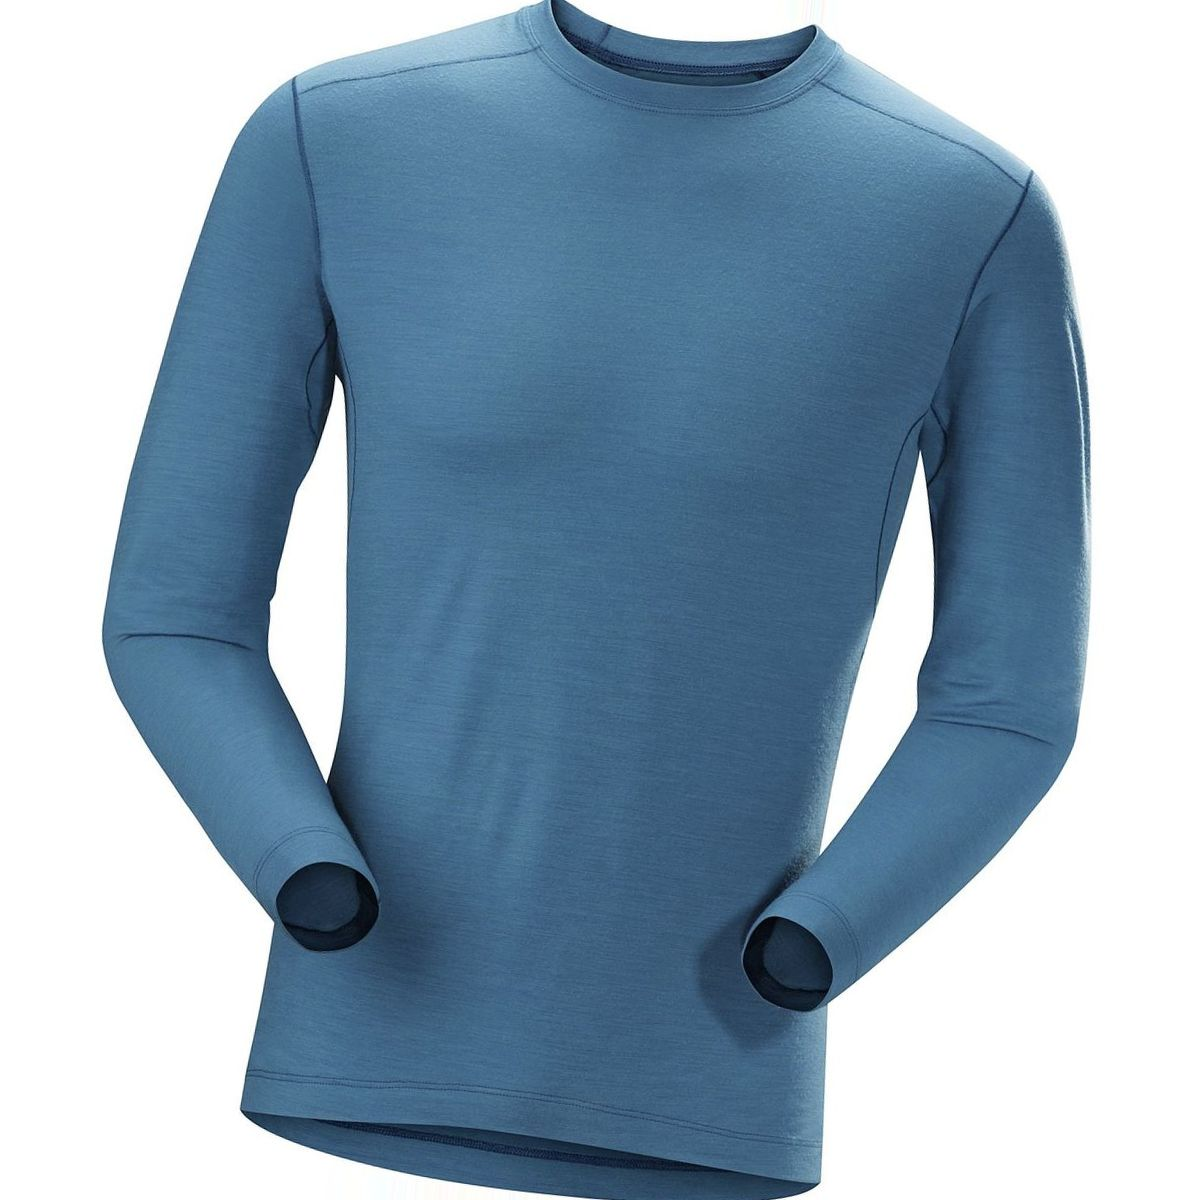 Arc'teryx Satoro AR Crew Long-Sleeve Top - Men's